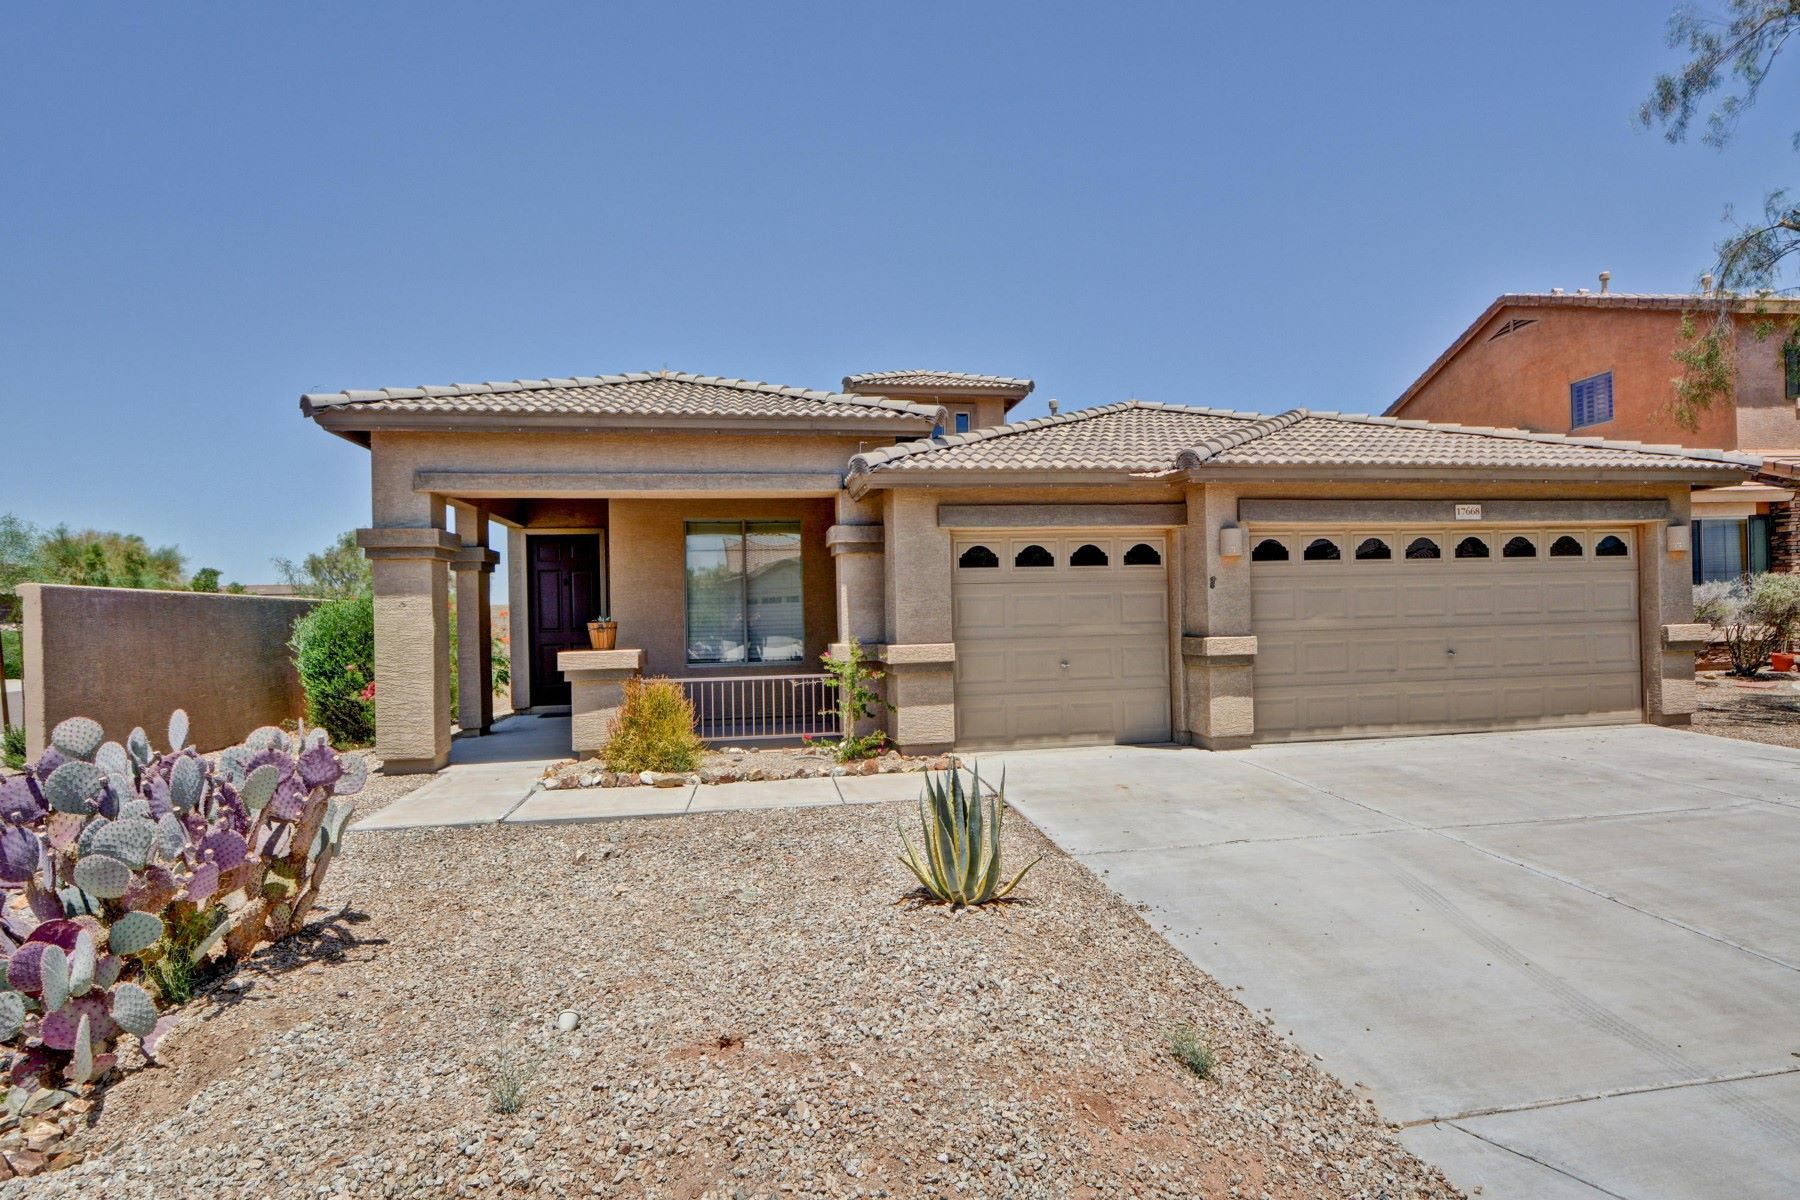 Single Family Homes for Active at Estrella Mountain Ranch 17668 W LAVENDER LN Goodyear, Arizona 85338 United States